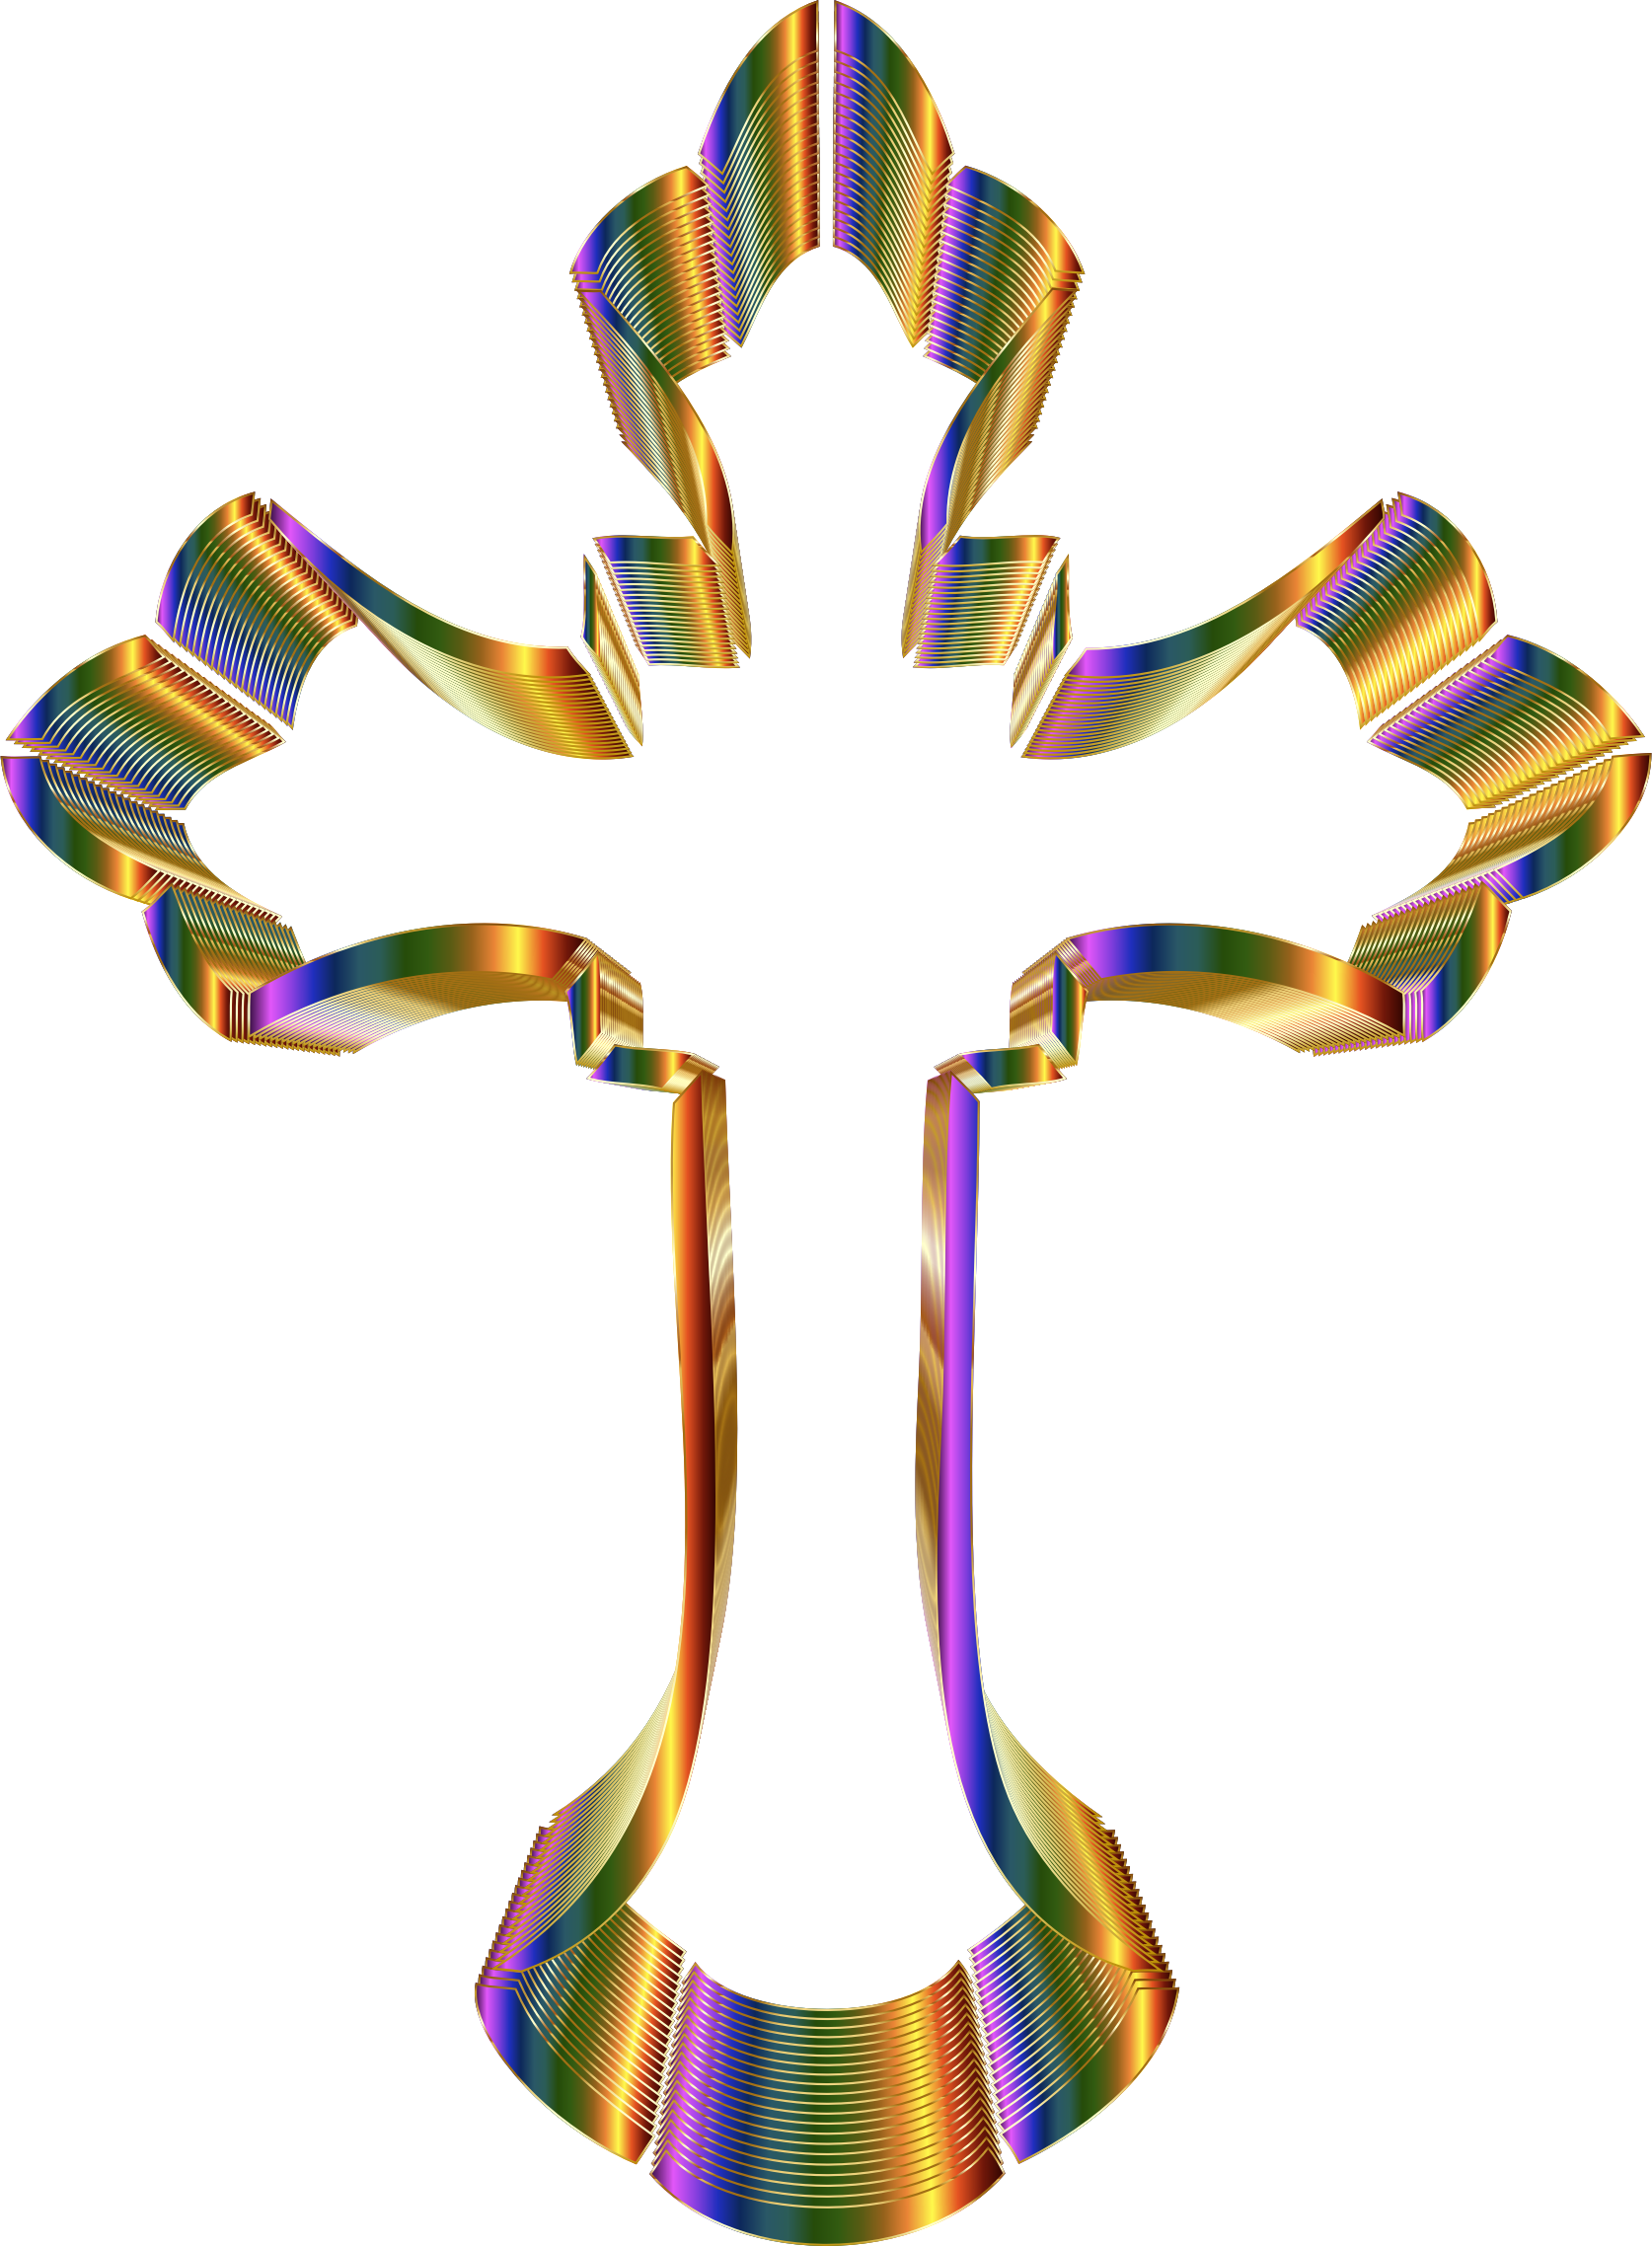 Prismatic Ornate Cross No Background by GDJ